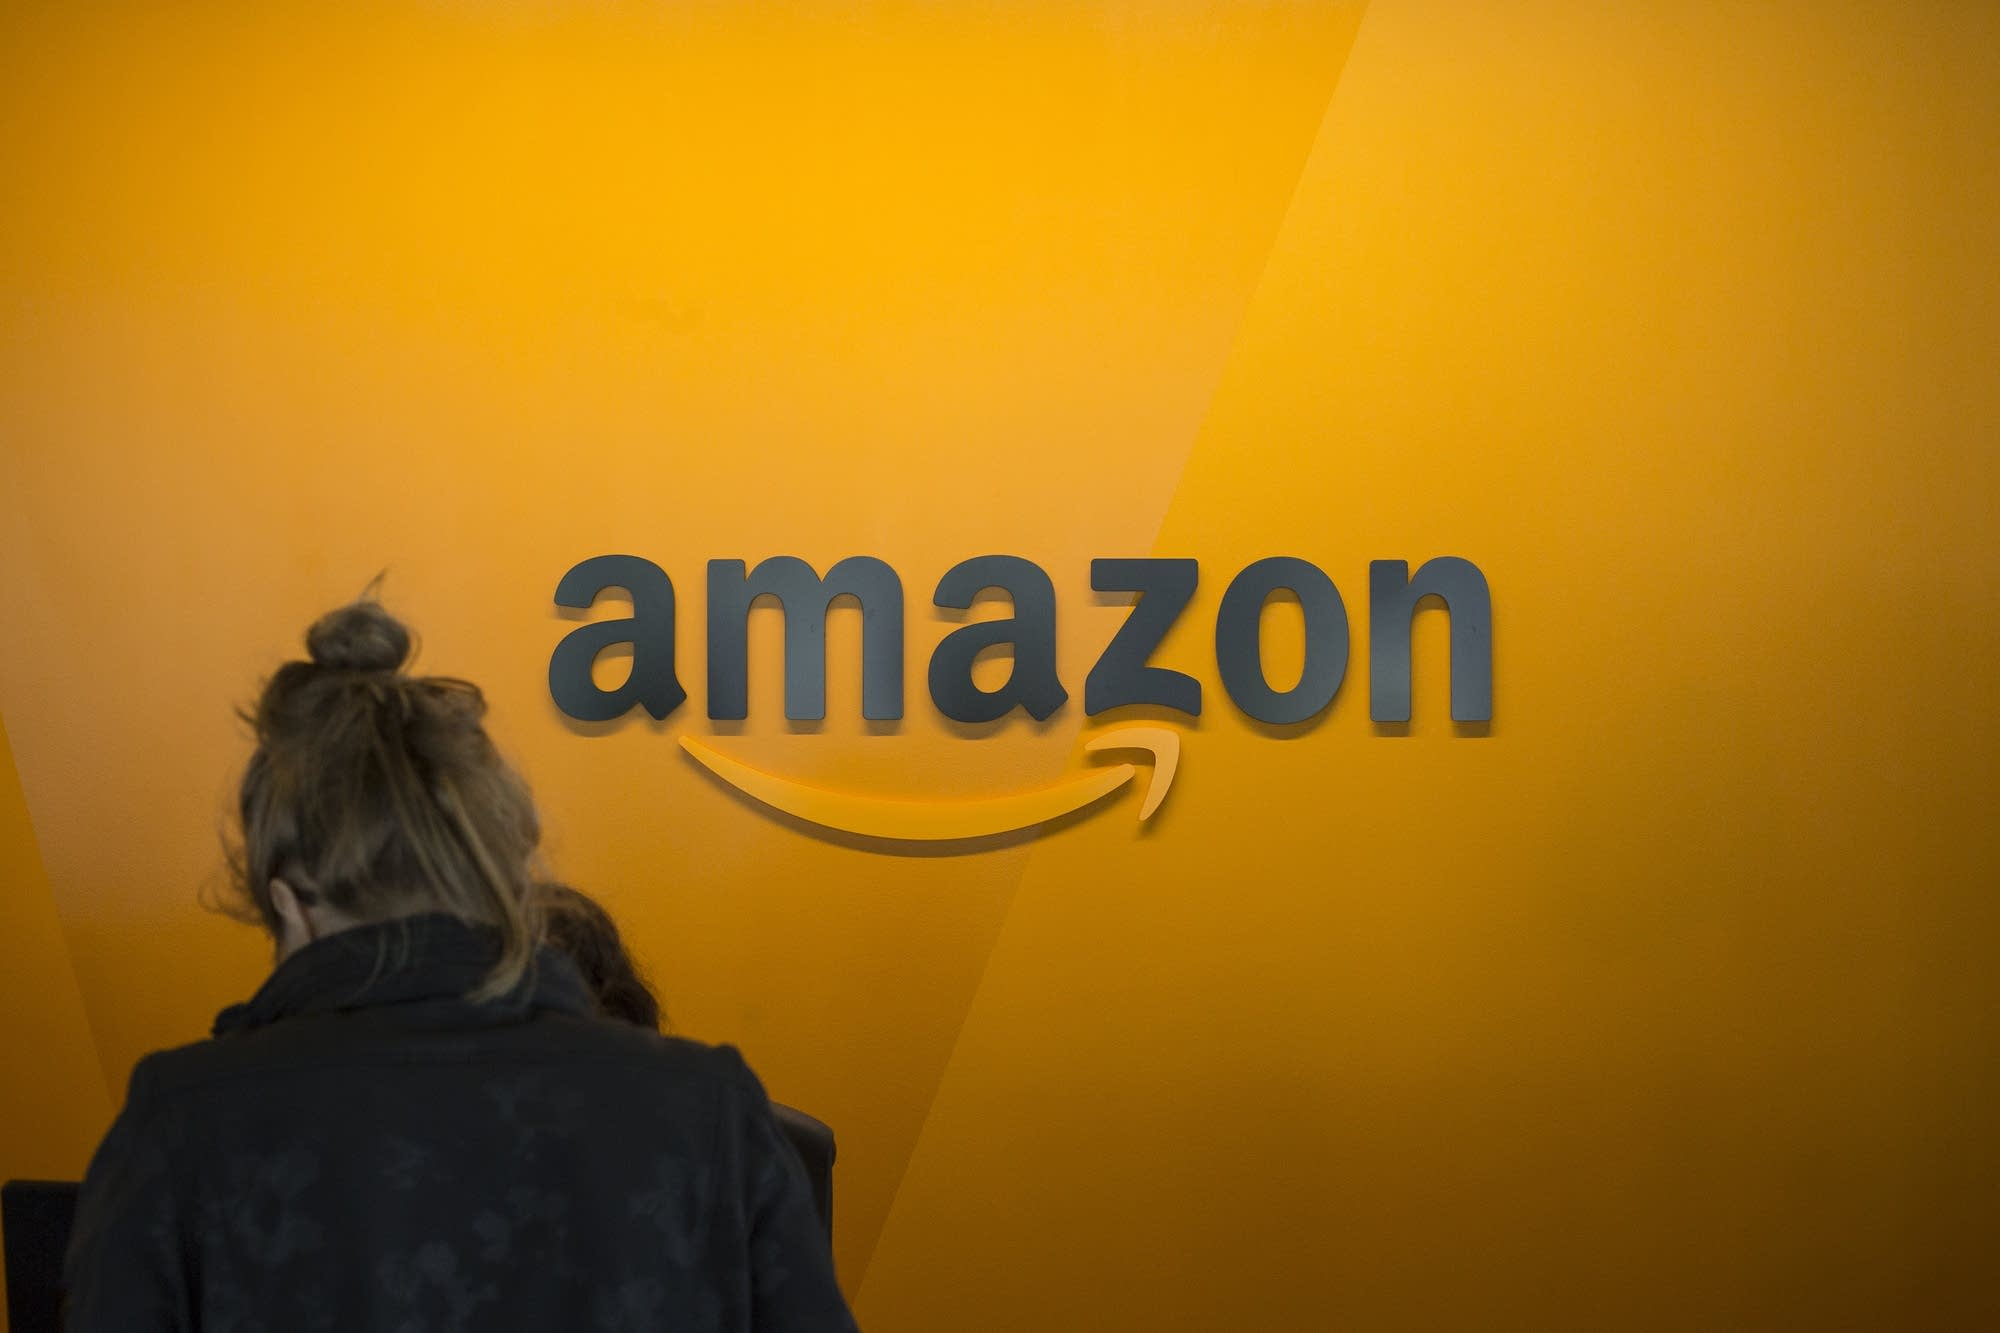 Boston, Get Ready! Amazon to Add 2000 Jobs